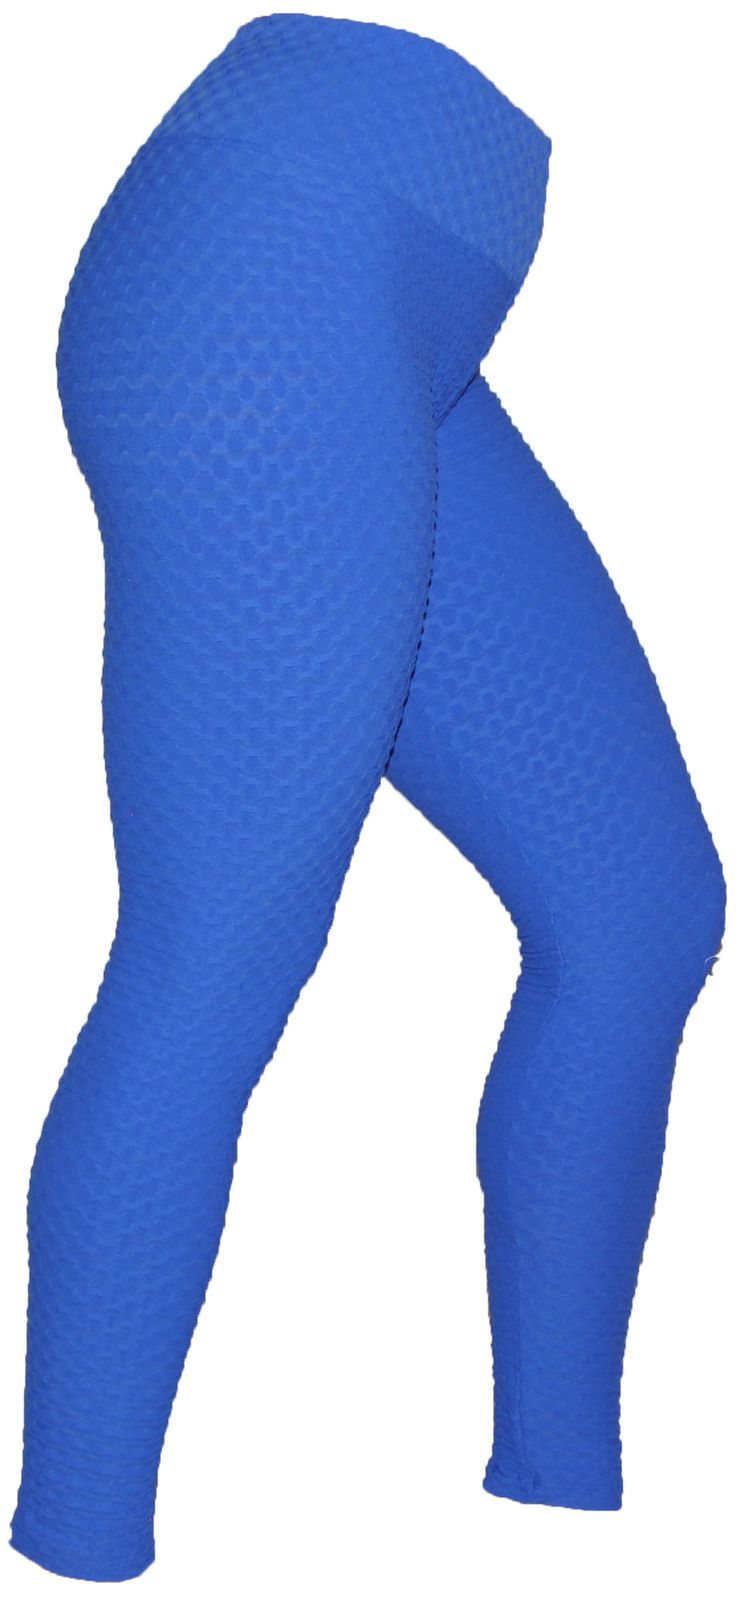 These funky leggings are so much fun to wear Leggings are so comfortable to wear and give you flexibility and style, Leggings are the Perfect combination of bold prints and soft microfiber fabric that makes it funky and comfy. #gymwear